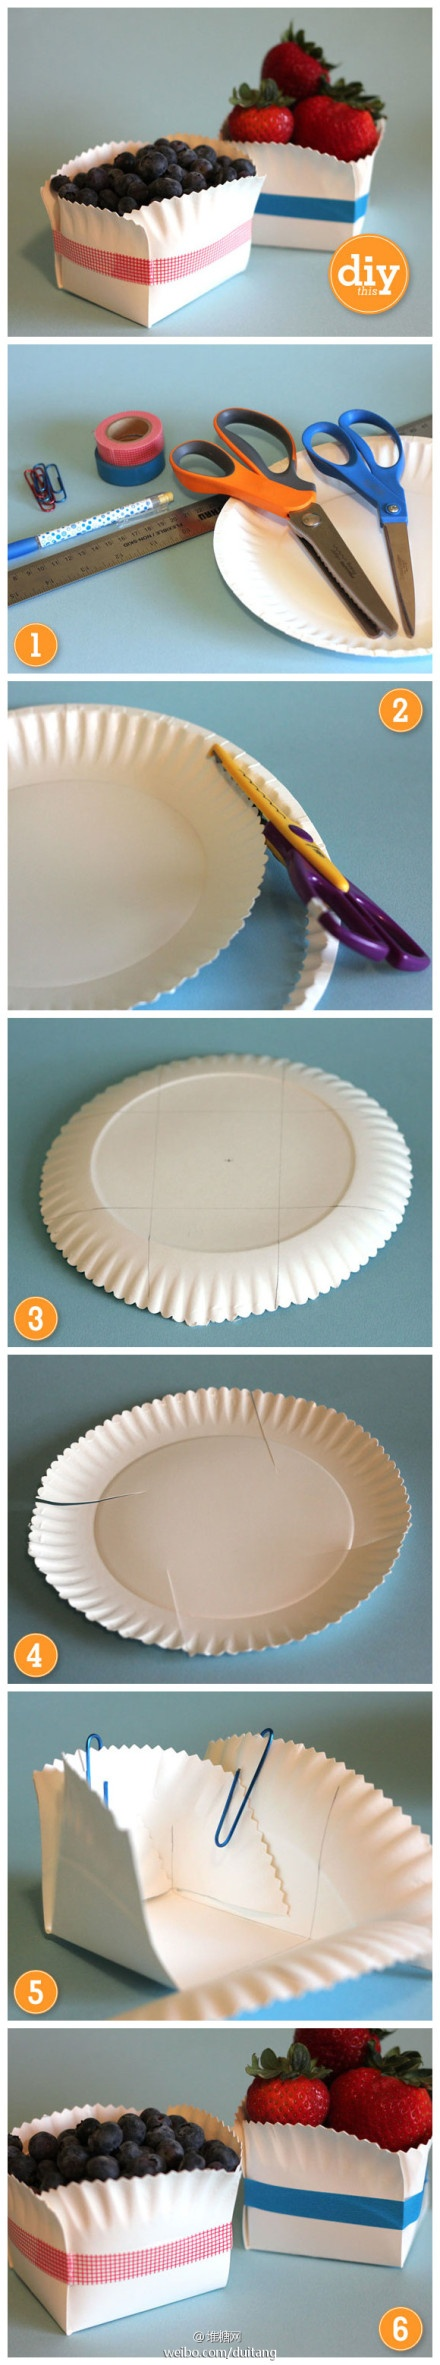 Making these cute little containers out of paper plates!